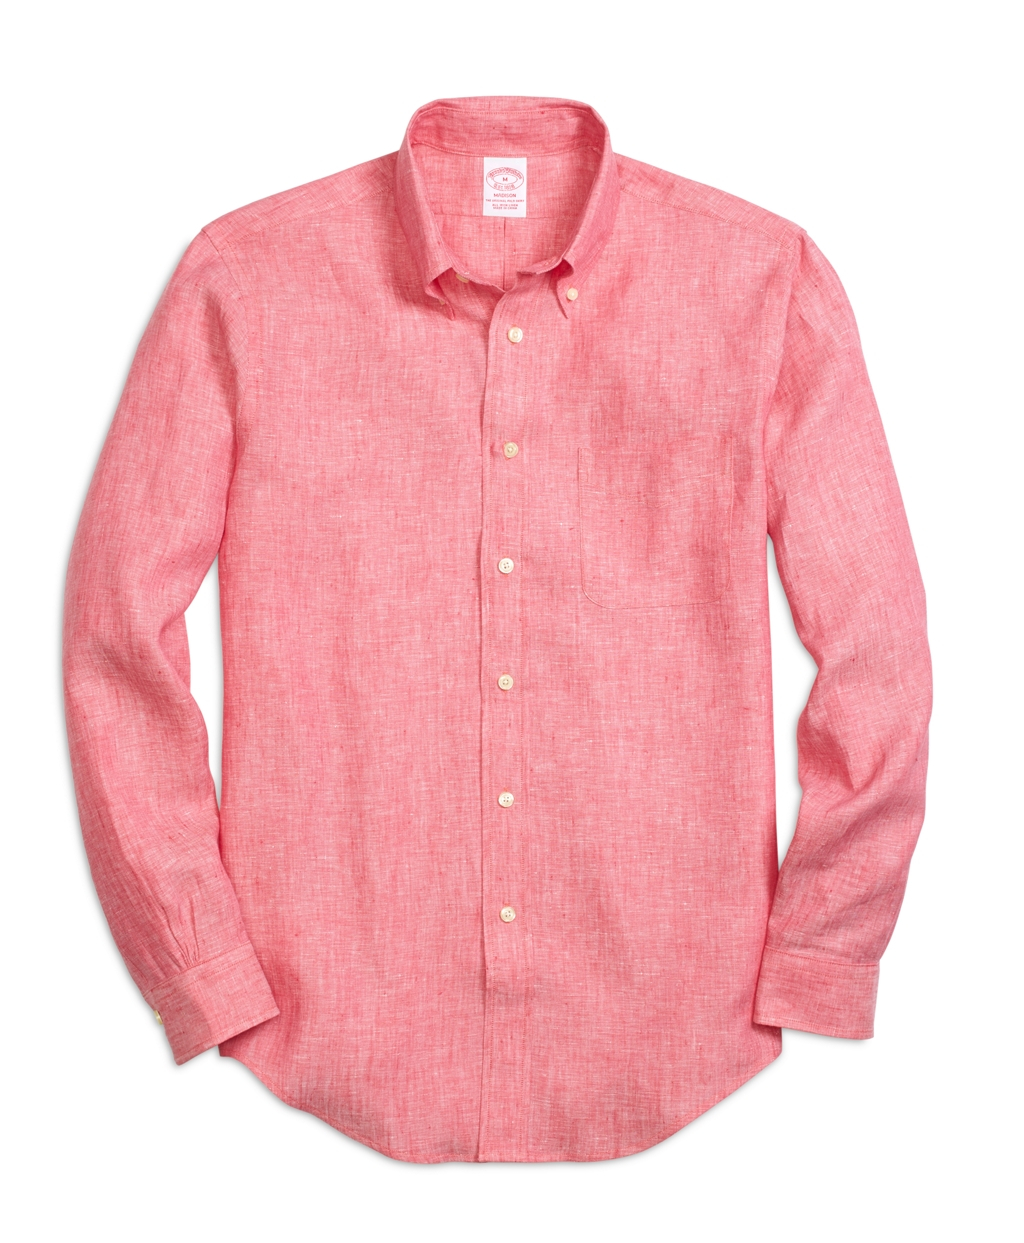 Brooks brothers regent fit linen sport shirt in pink for Brooks brothers shirt size guide